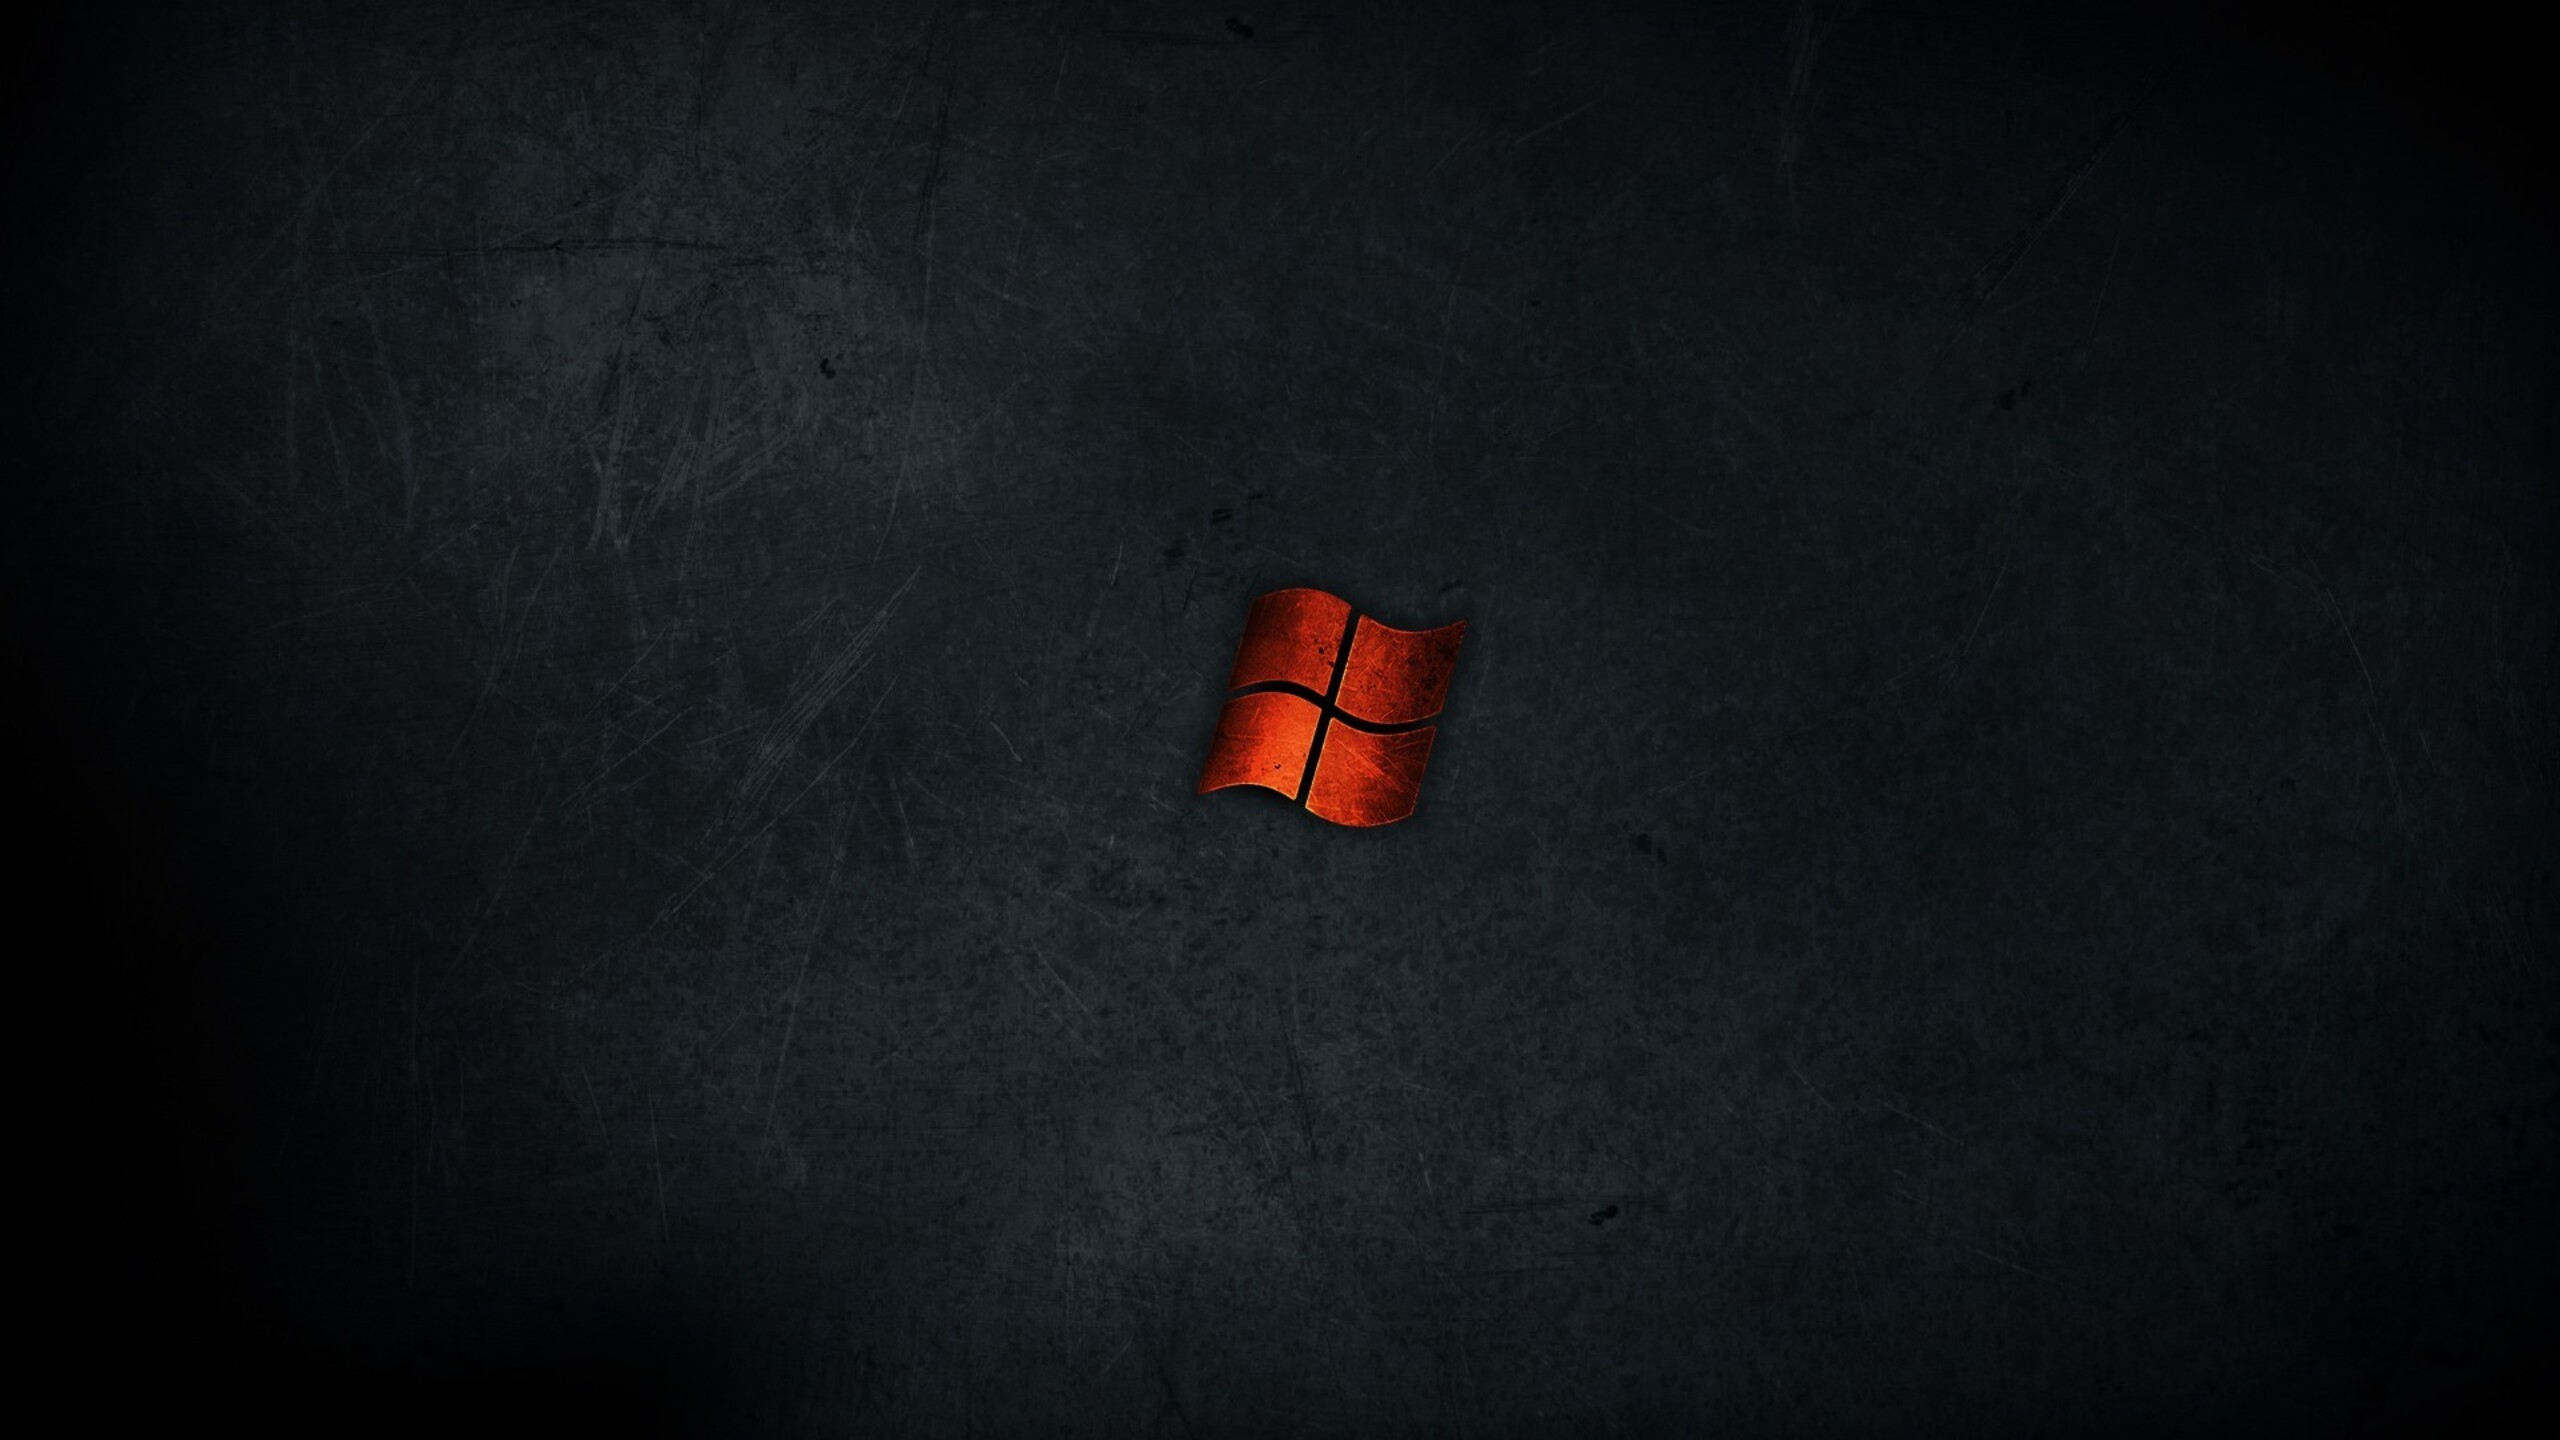 2560x1440 Microsoft Windows 1440p Resolution Hd 4k Wallpapers Images Backgrounds Photos And Pictures